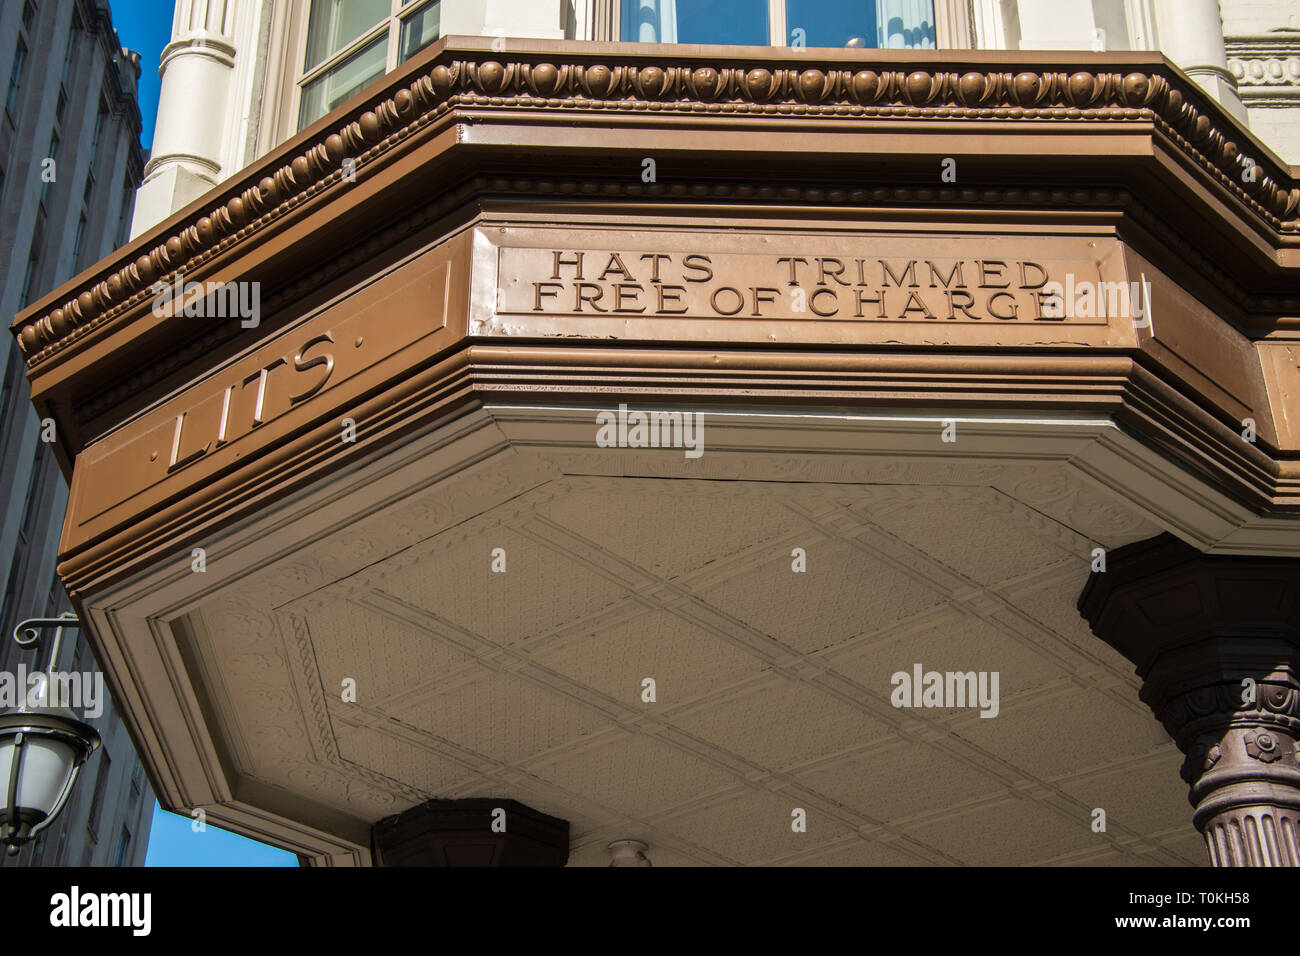 Philadelphia, Pennsylvania - February 5, 2019: The marquee from the now closed famous Litts Brothers store in Philadelphia as seen on this date. Sign  - Stock Image